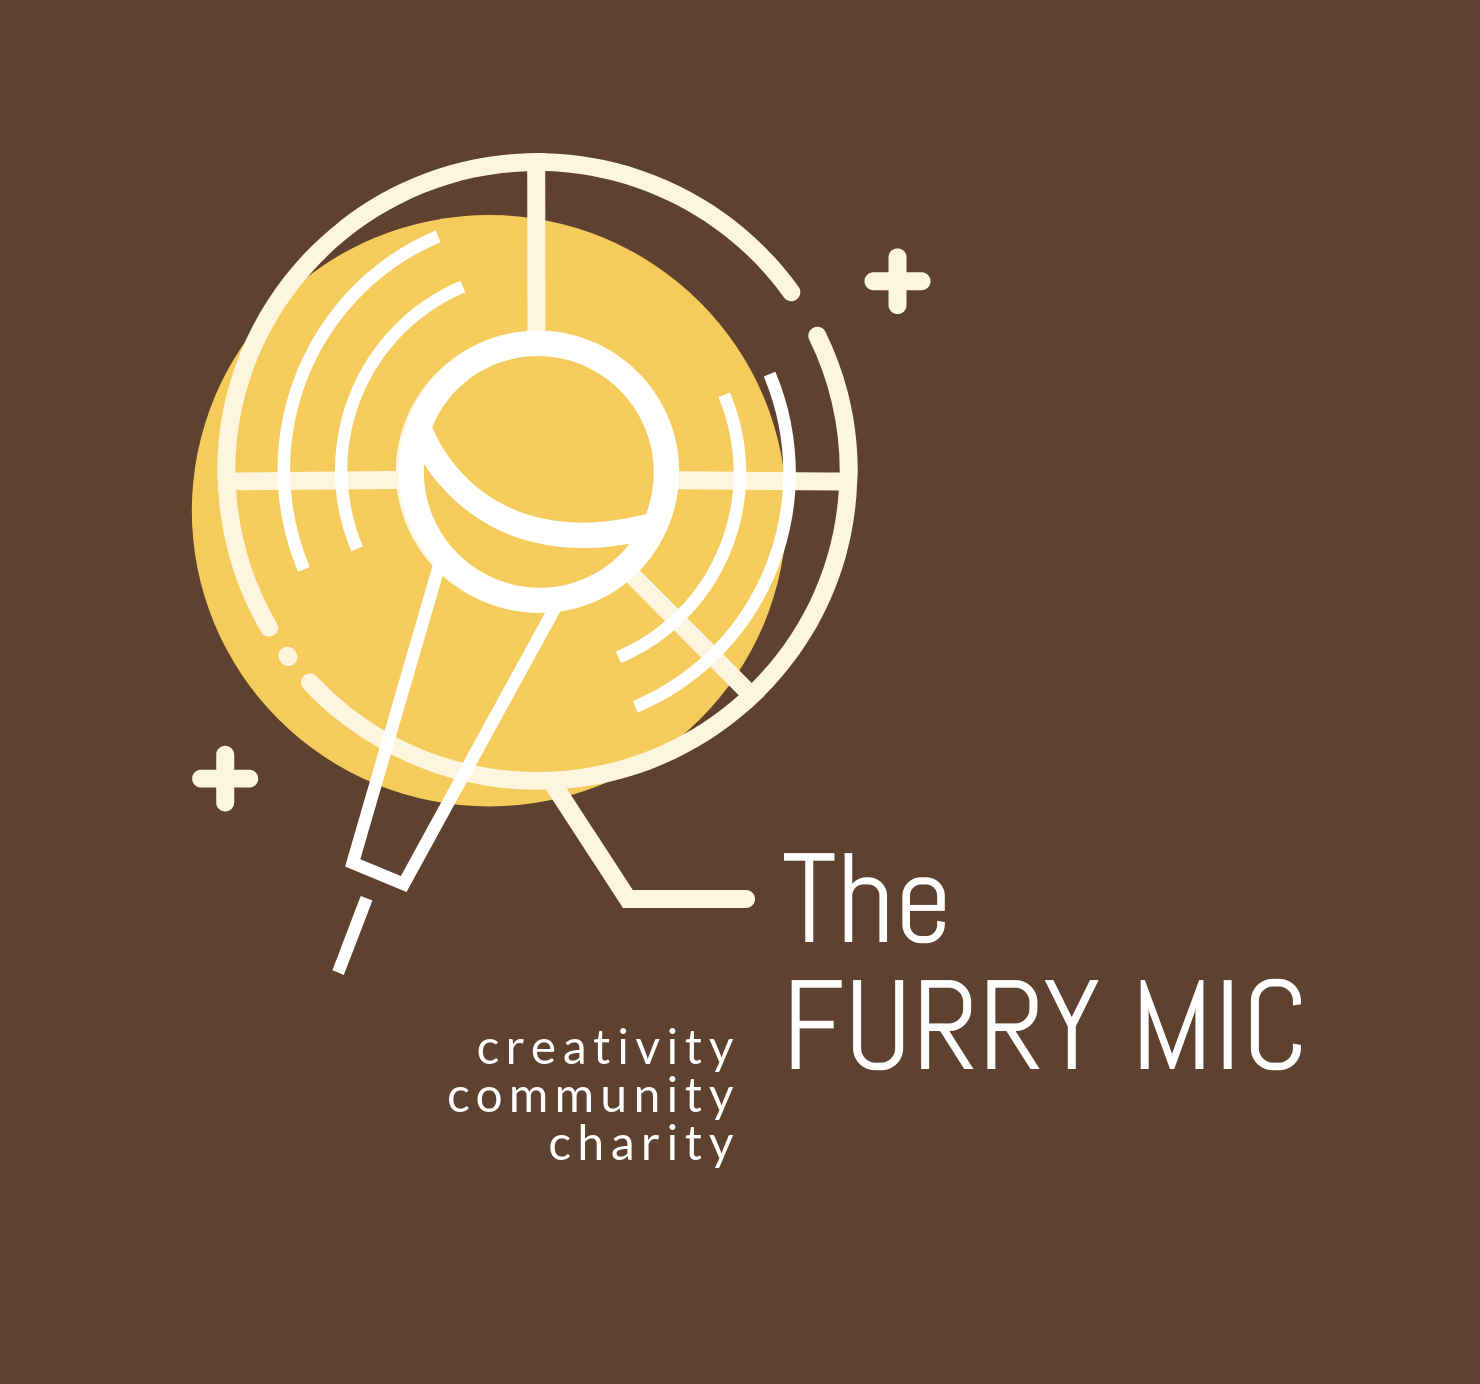 The Furry Mic